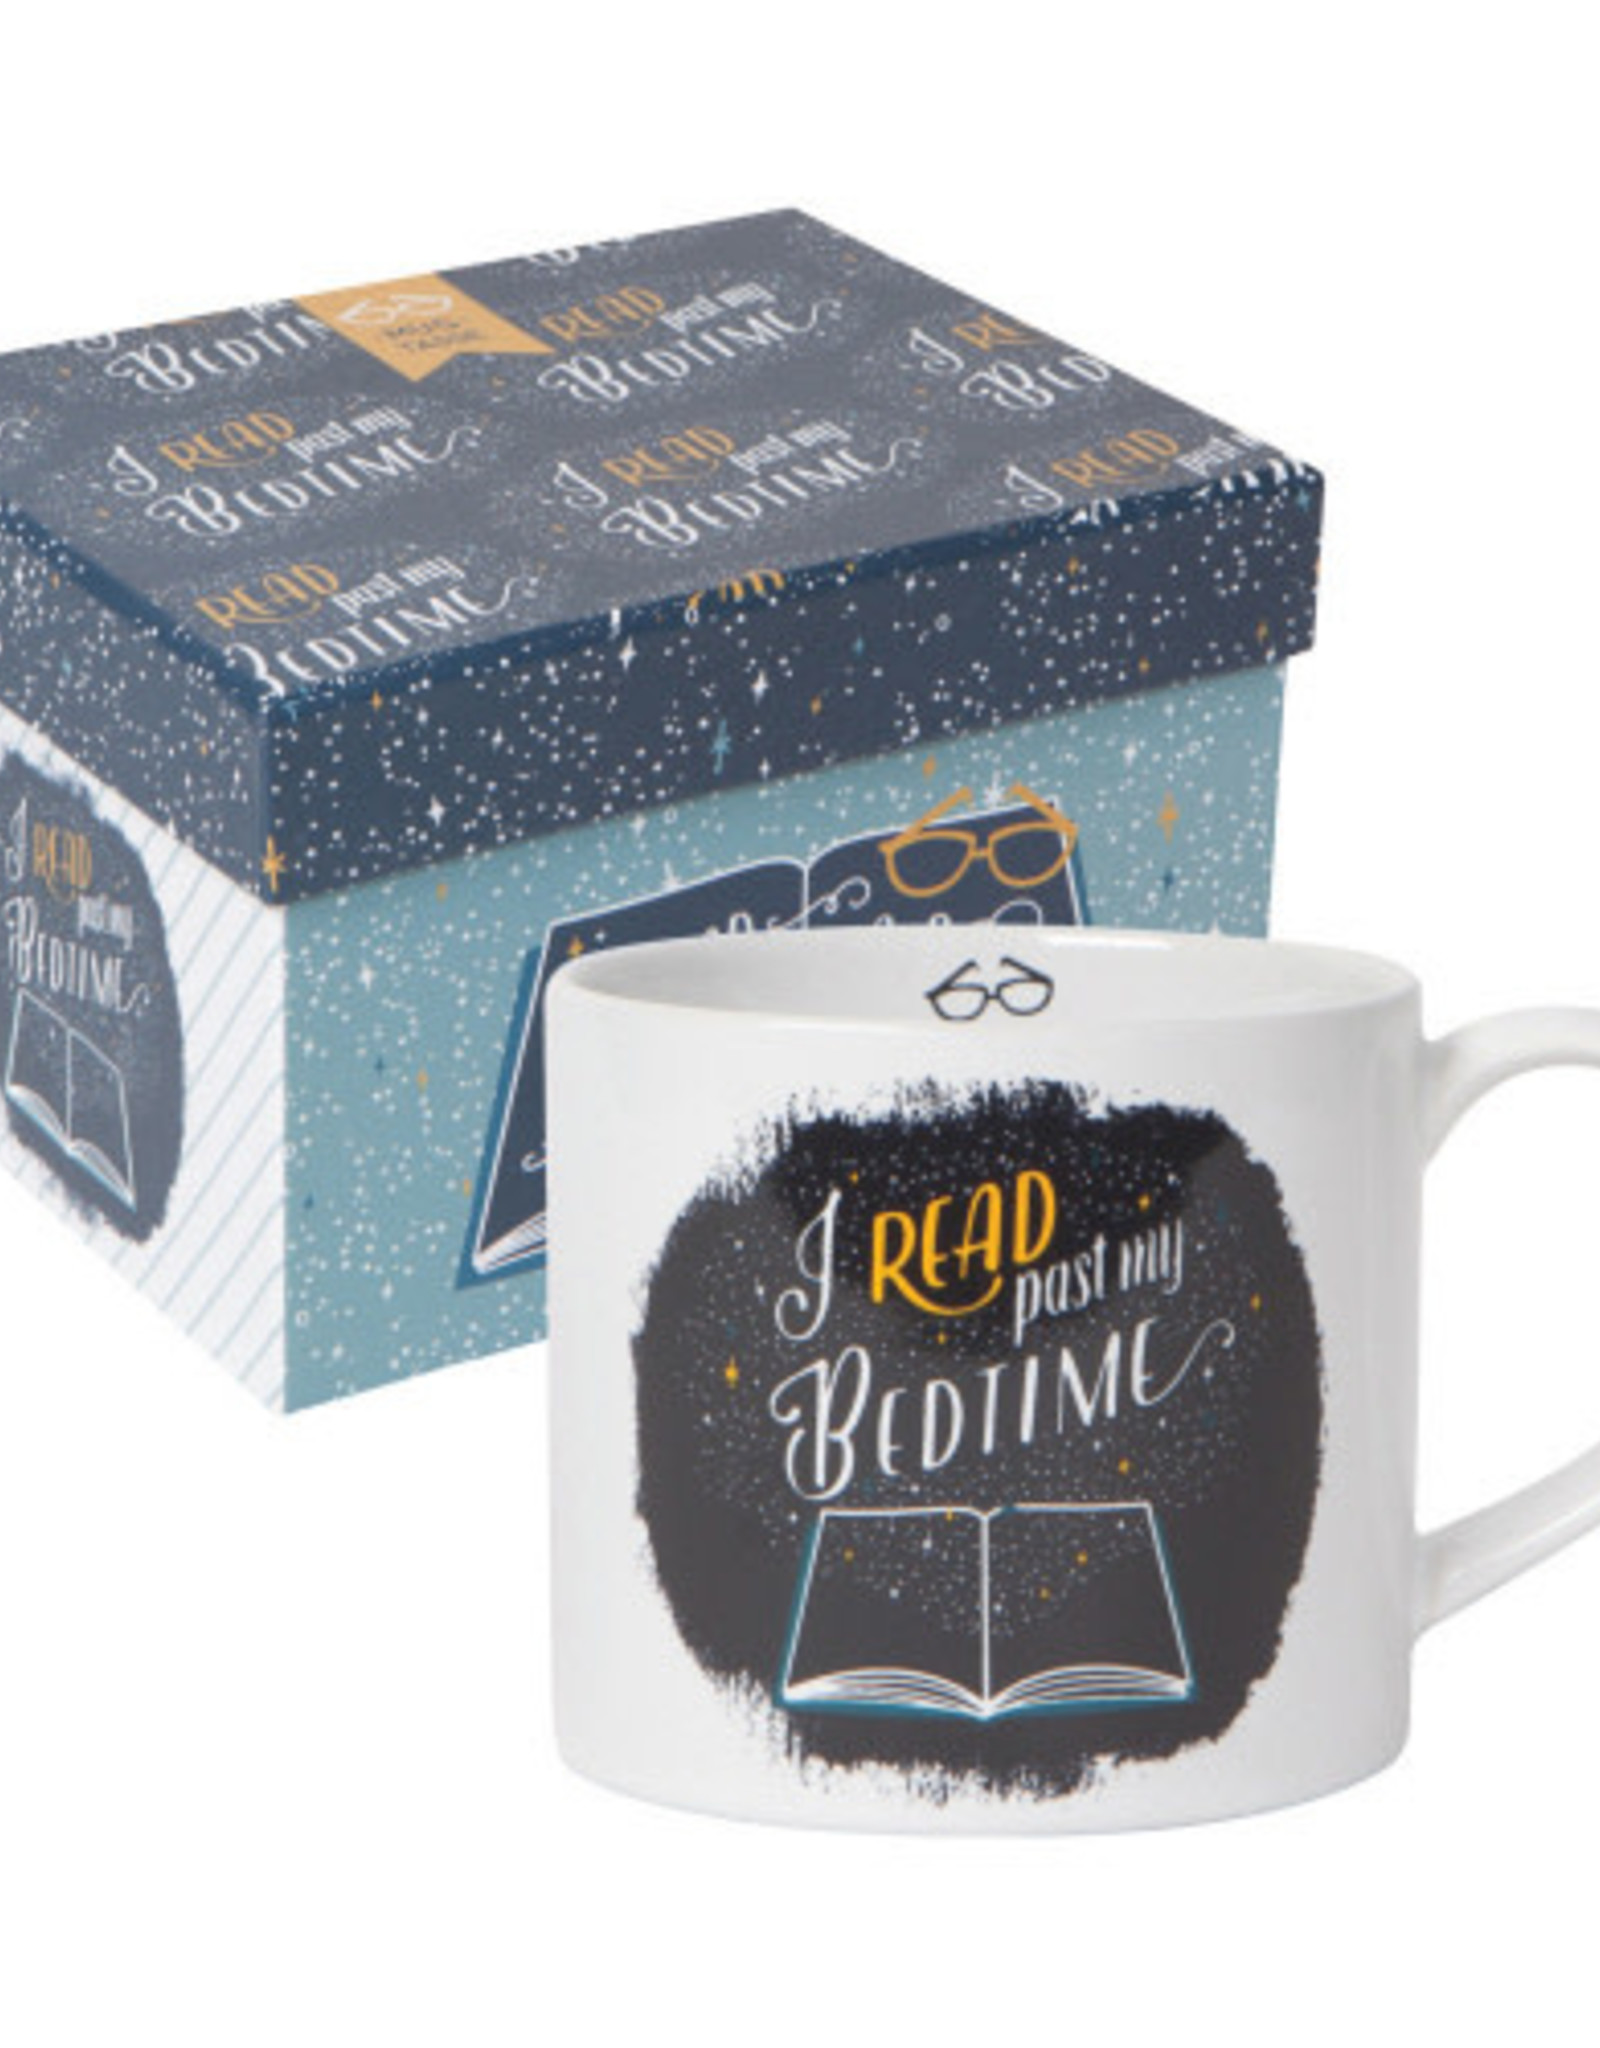 I Read Past My Bedtime Mug In a Box